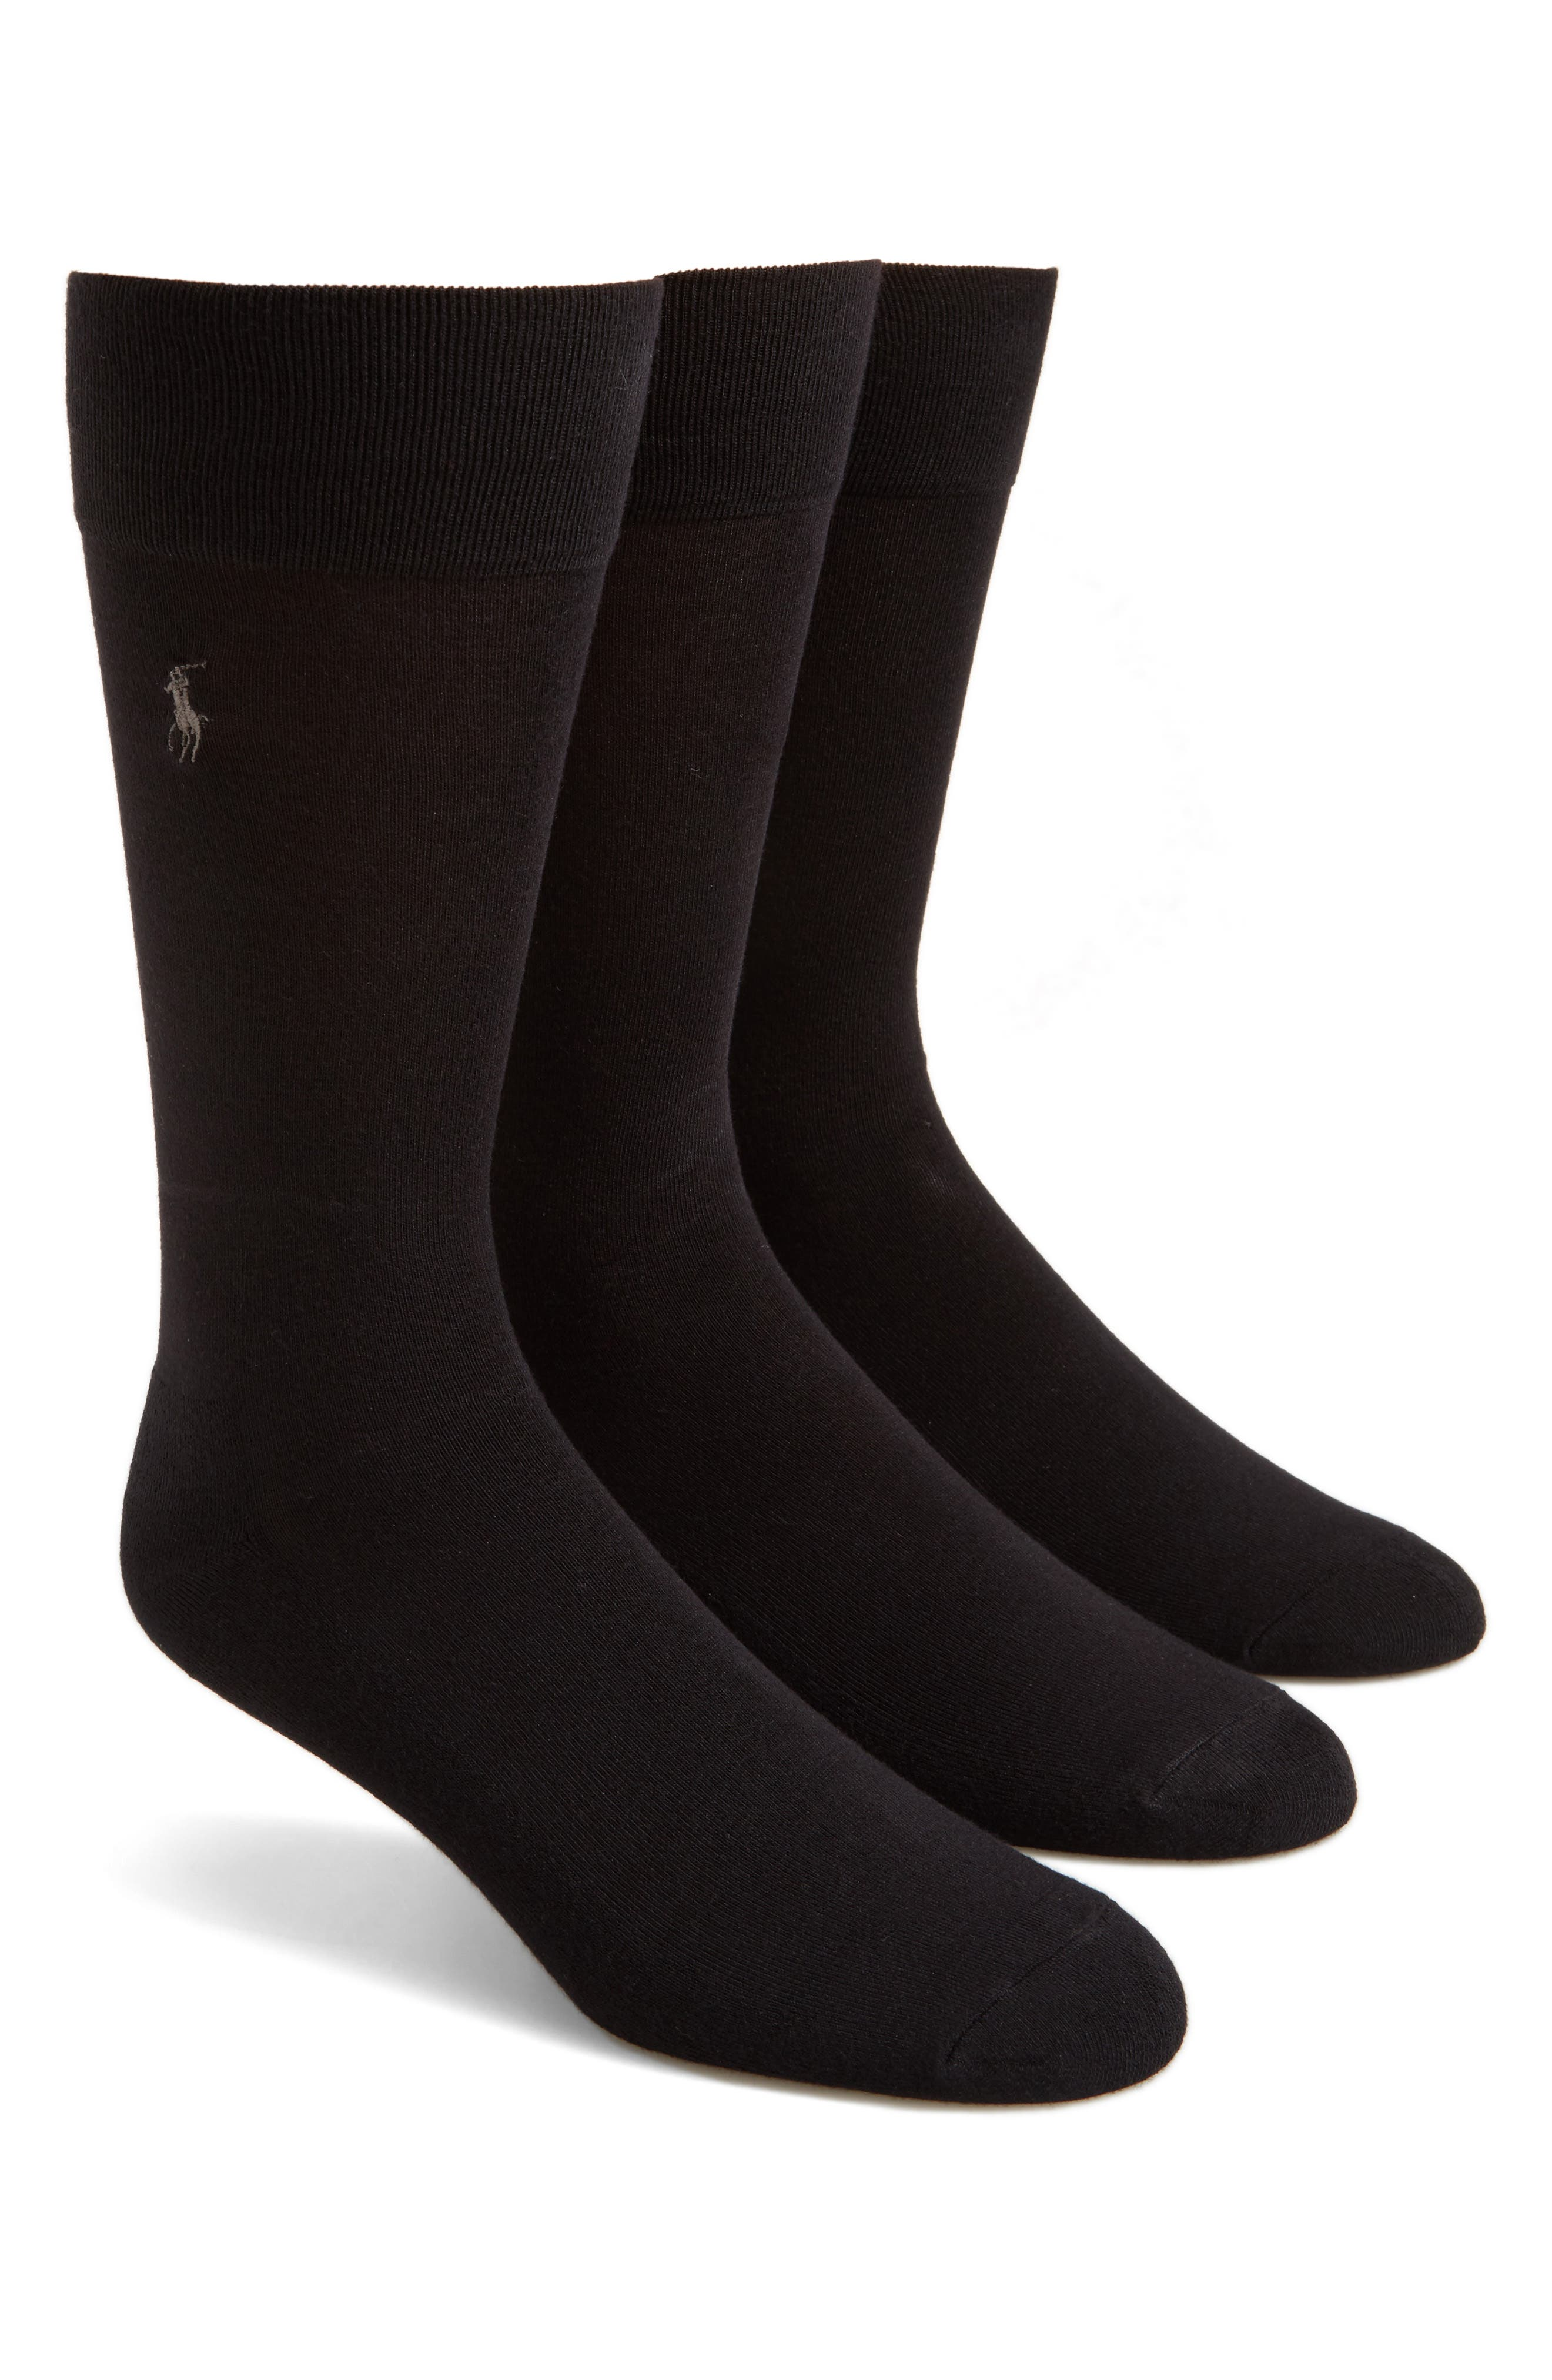 3-Pack Socks,                             Main thumbnail 1, color,                             BLACK